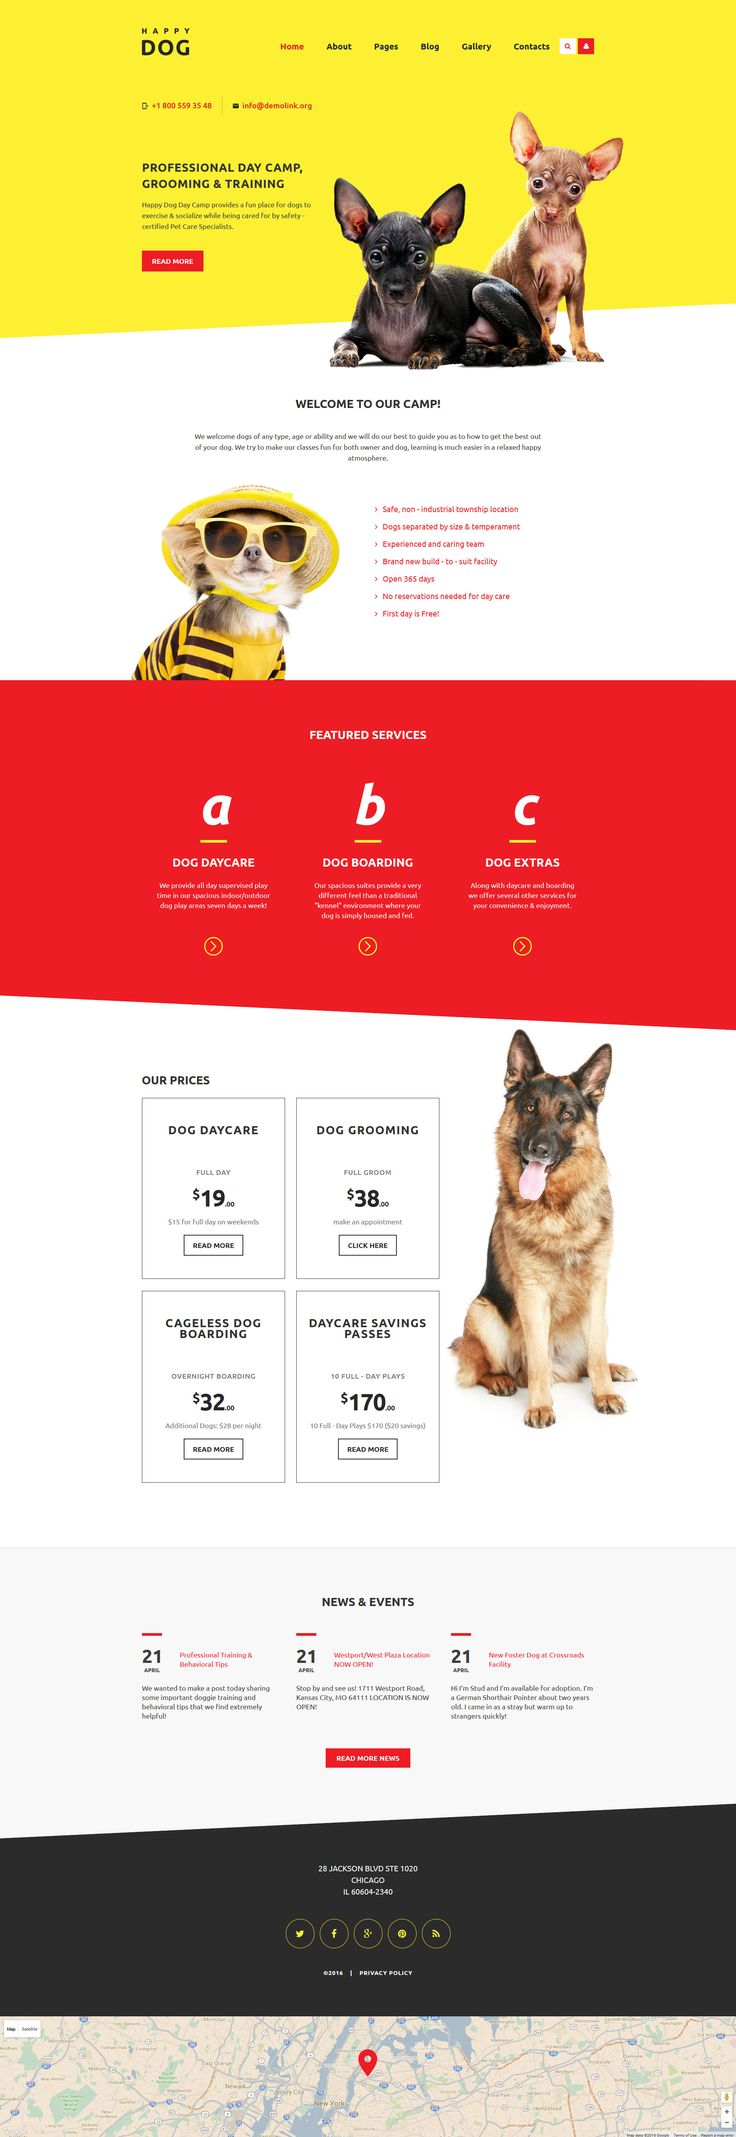 Happy Dog Joomla Template http://www.templatemonster.com/joomla-templates/happy-dog-joomla-template-58559.html